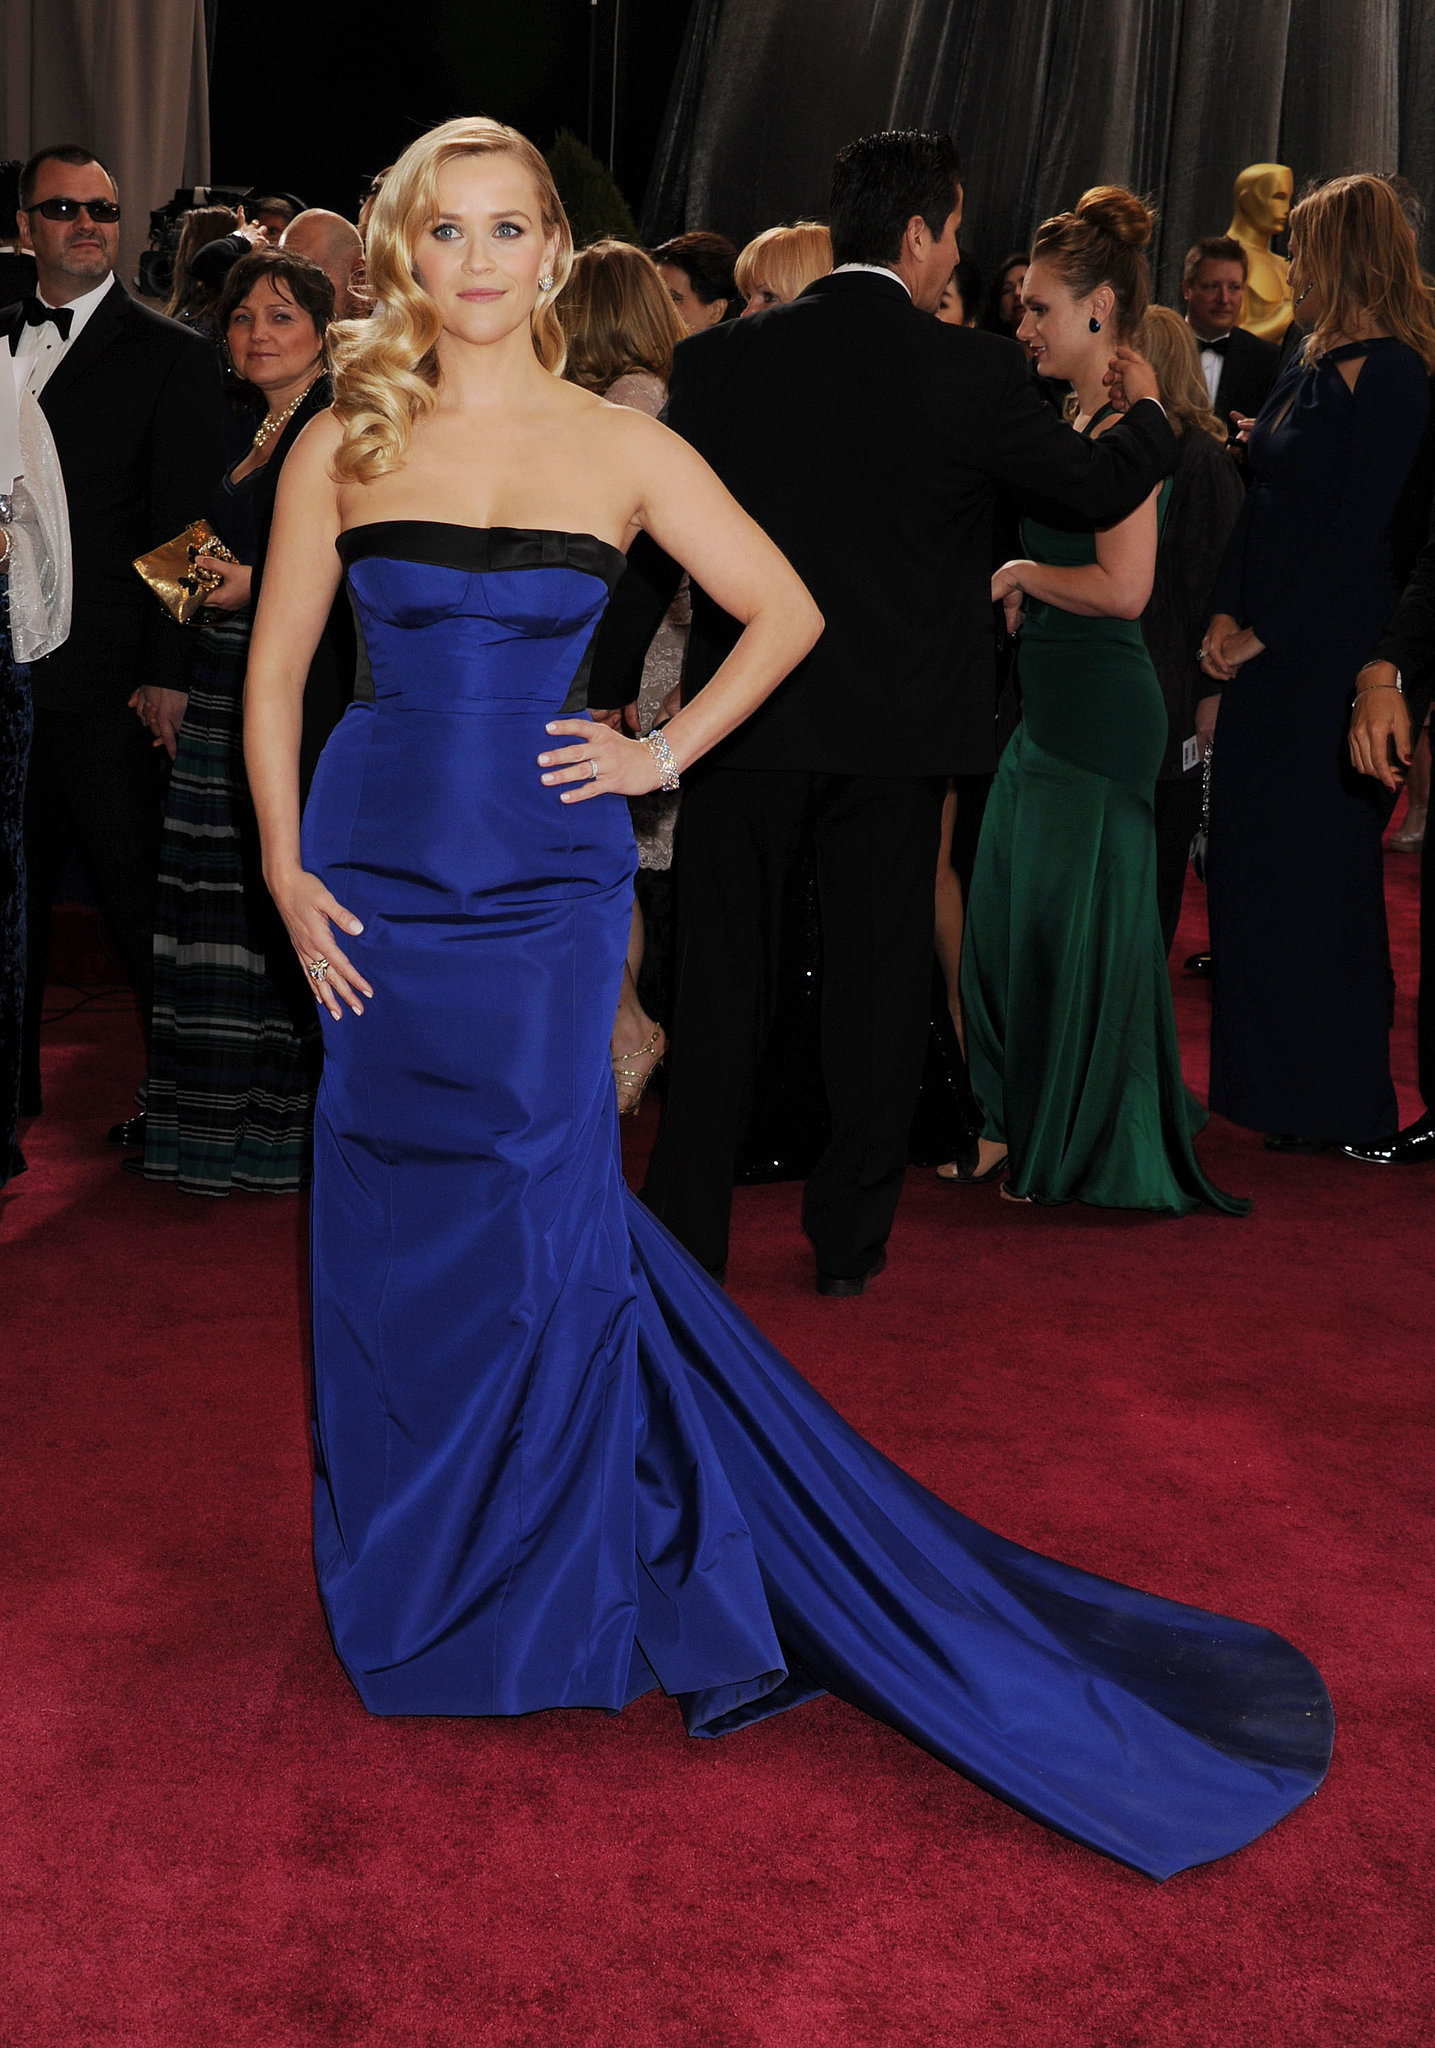 Reese Witherspoon in Louis Vuitton at 2013 Oscars